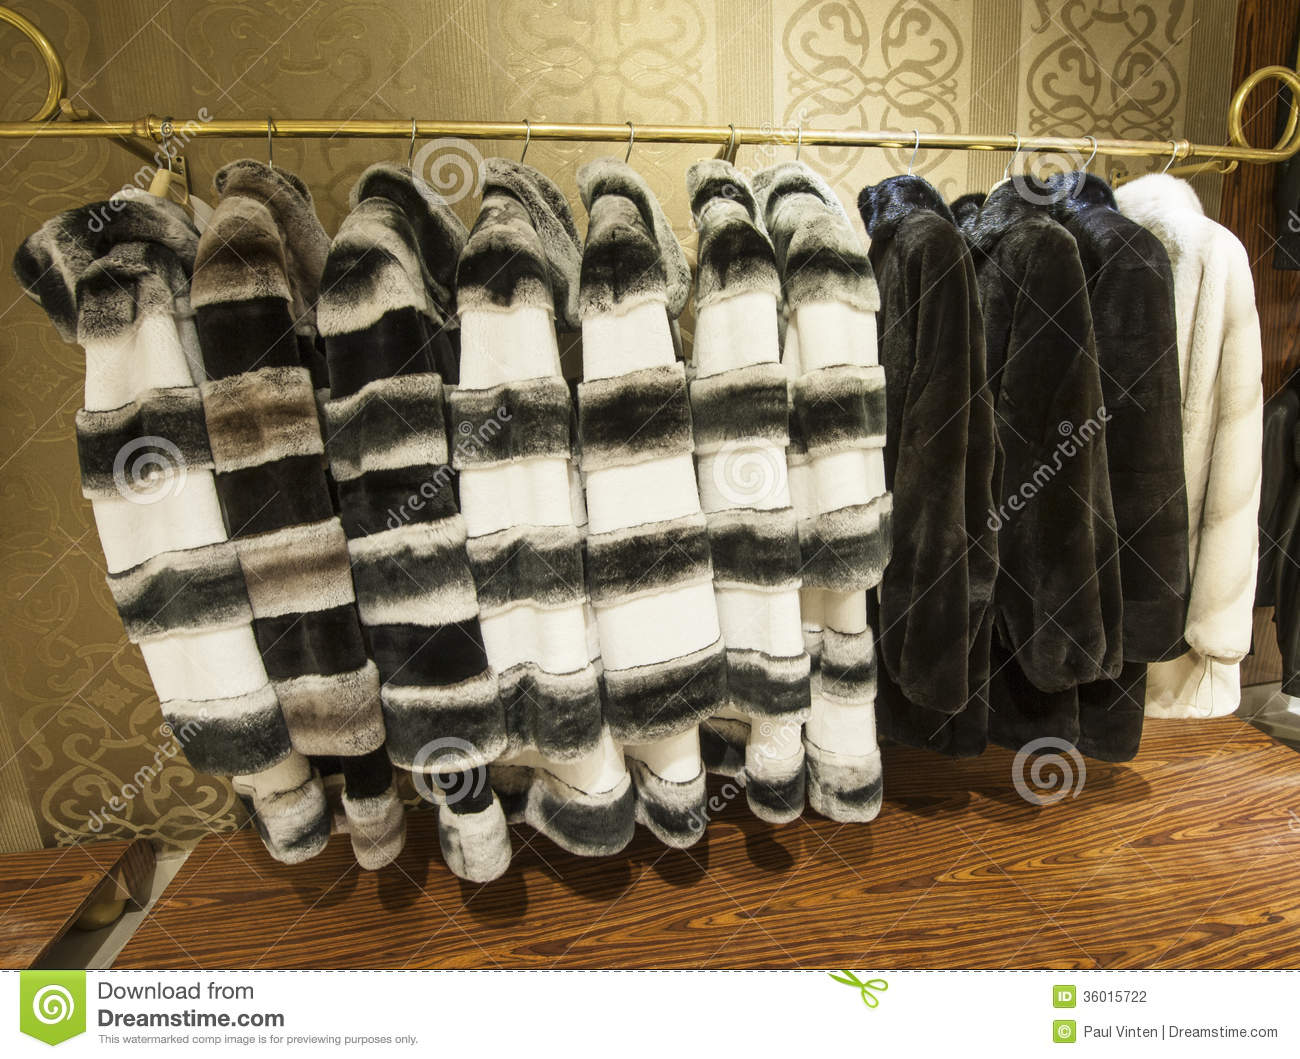 Fur Coats Hanging On A Rail Stock Photography - Image: 36015722